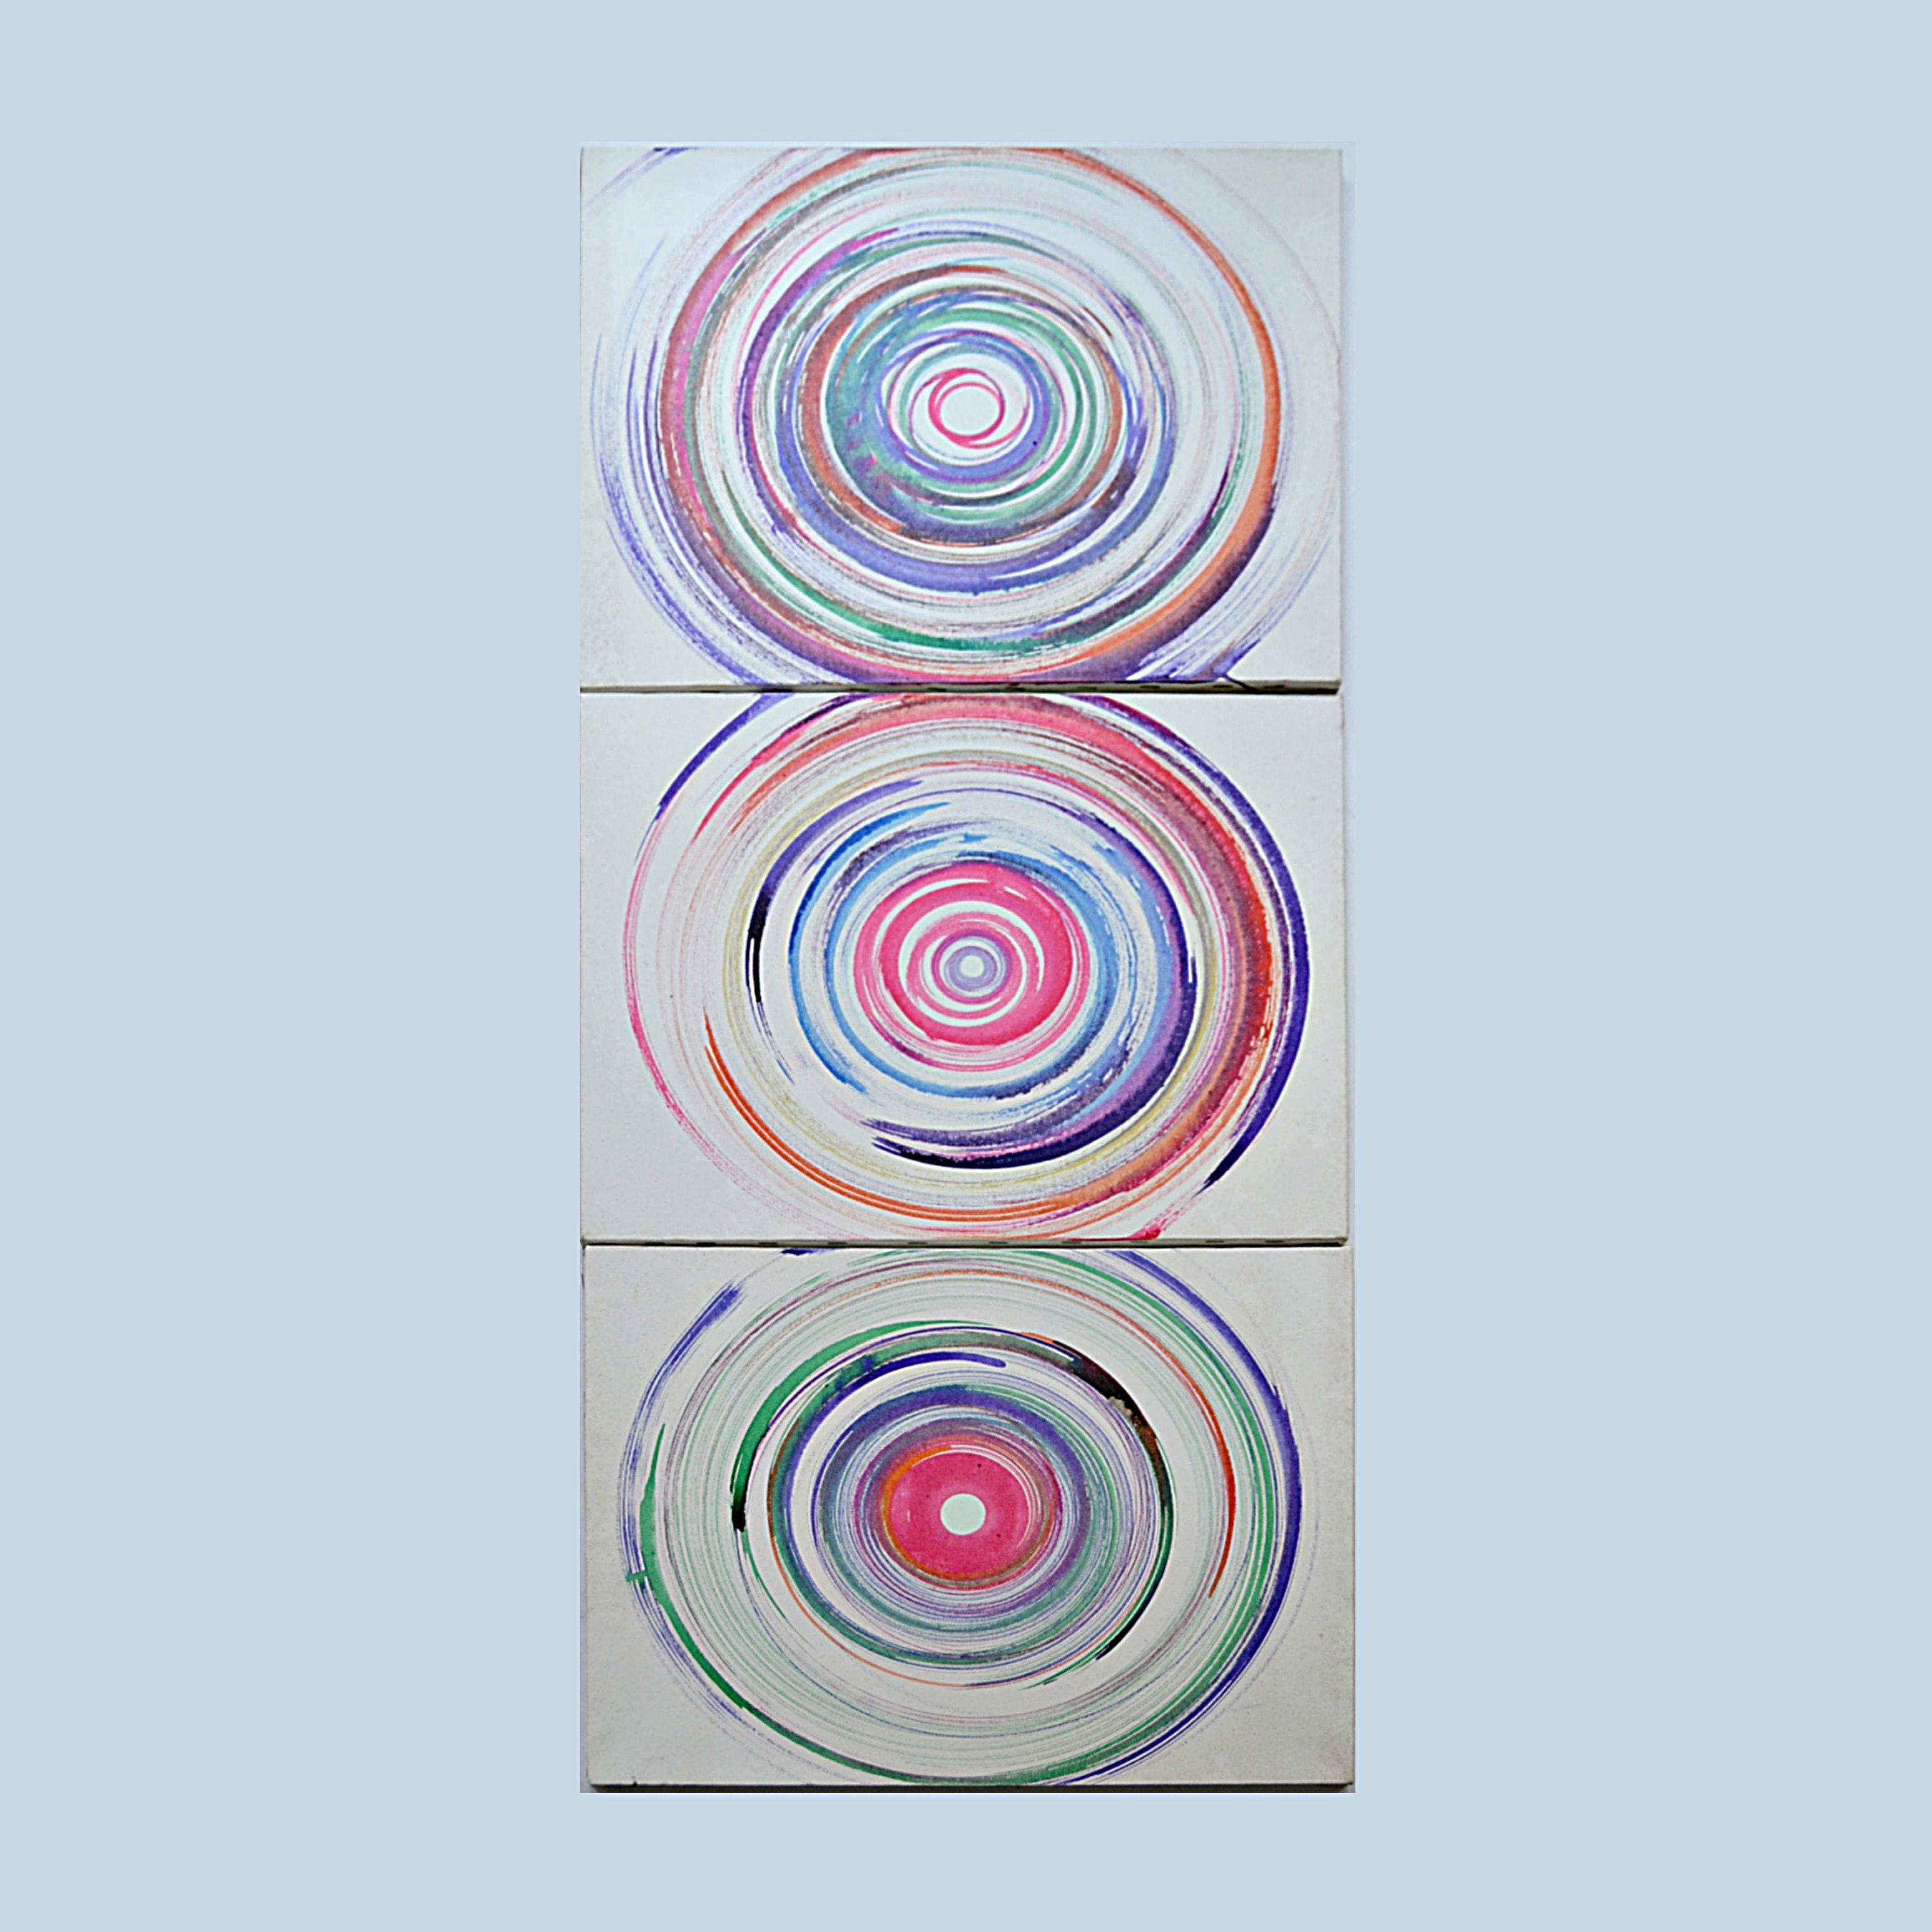 Group of 1970s Spin Art on Canvas